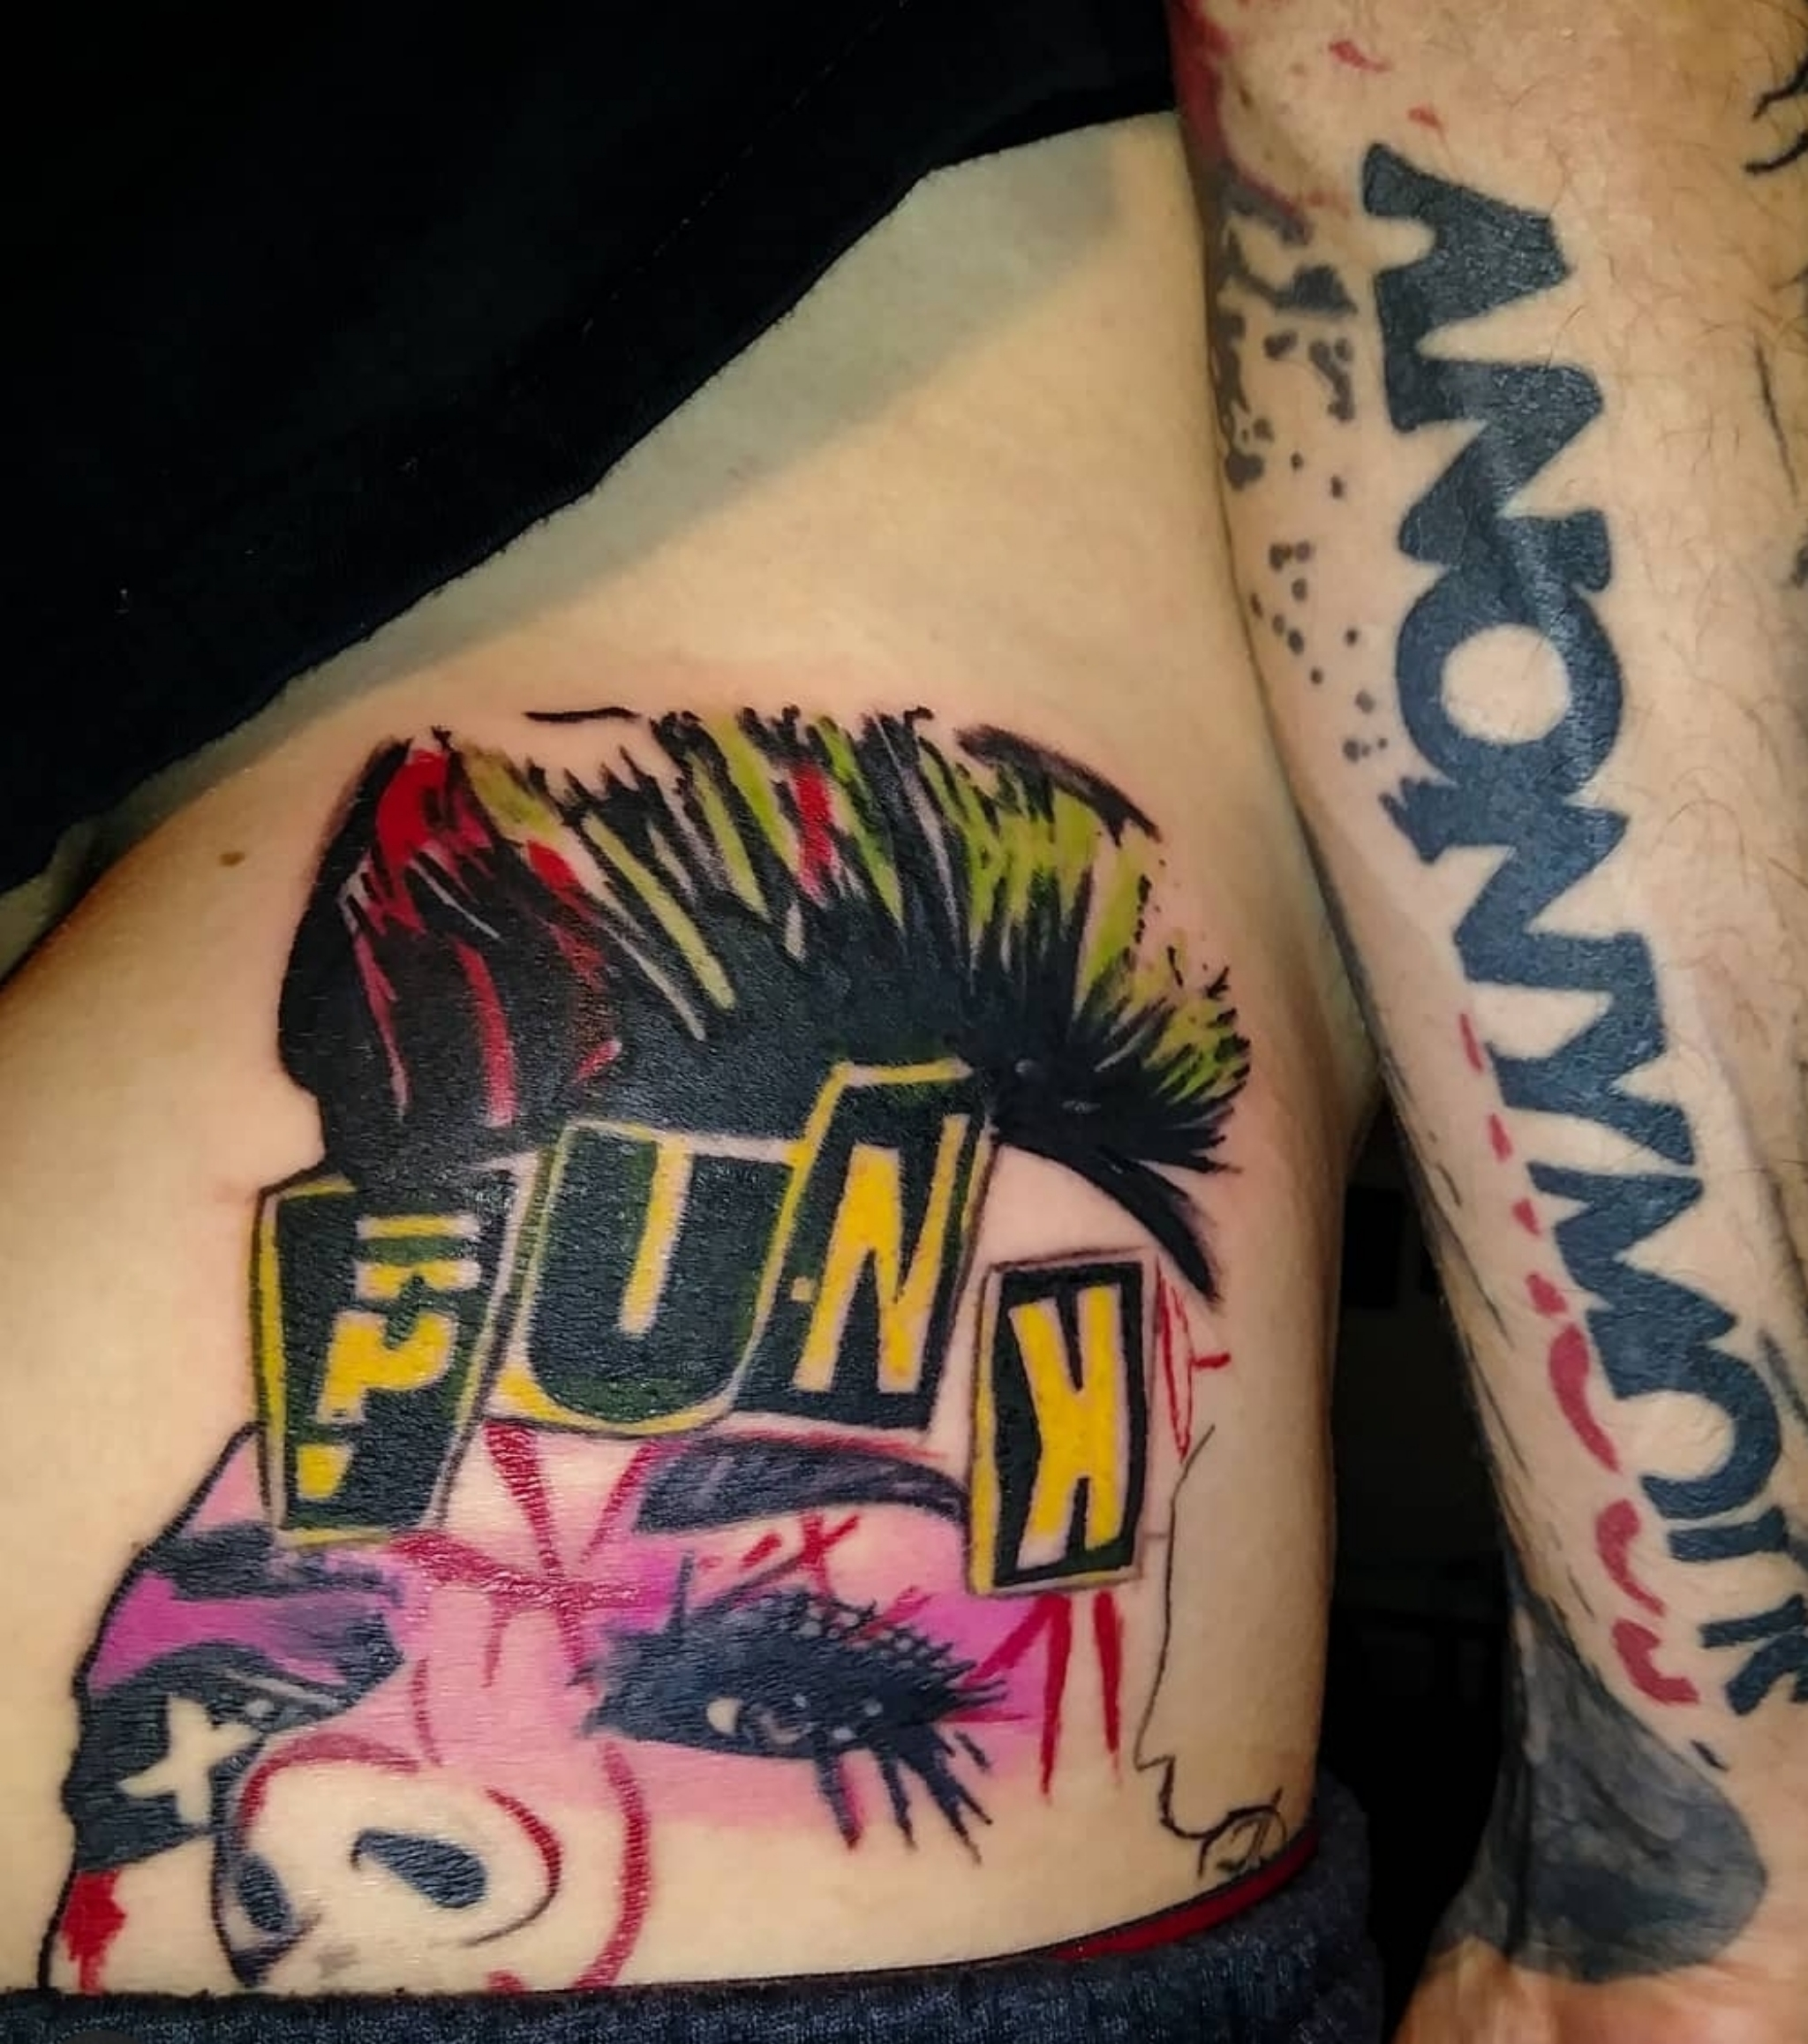 Punk Tattoo